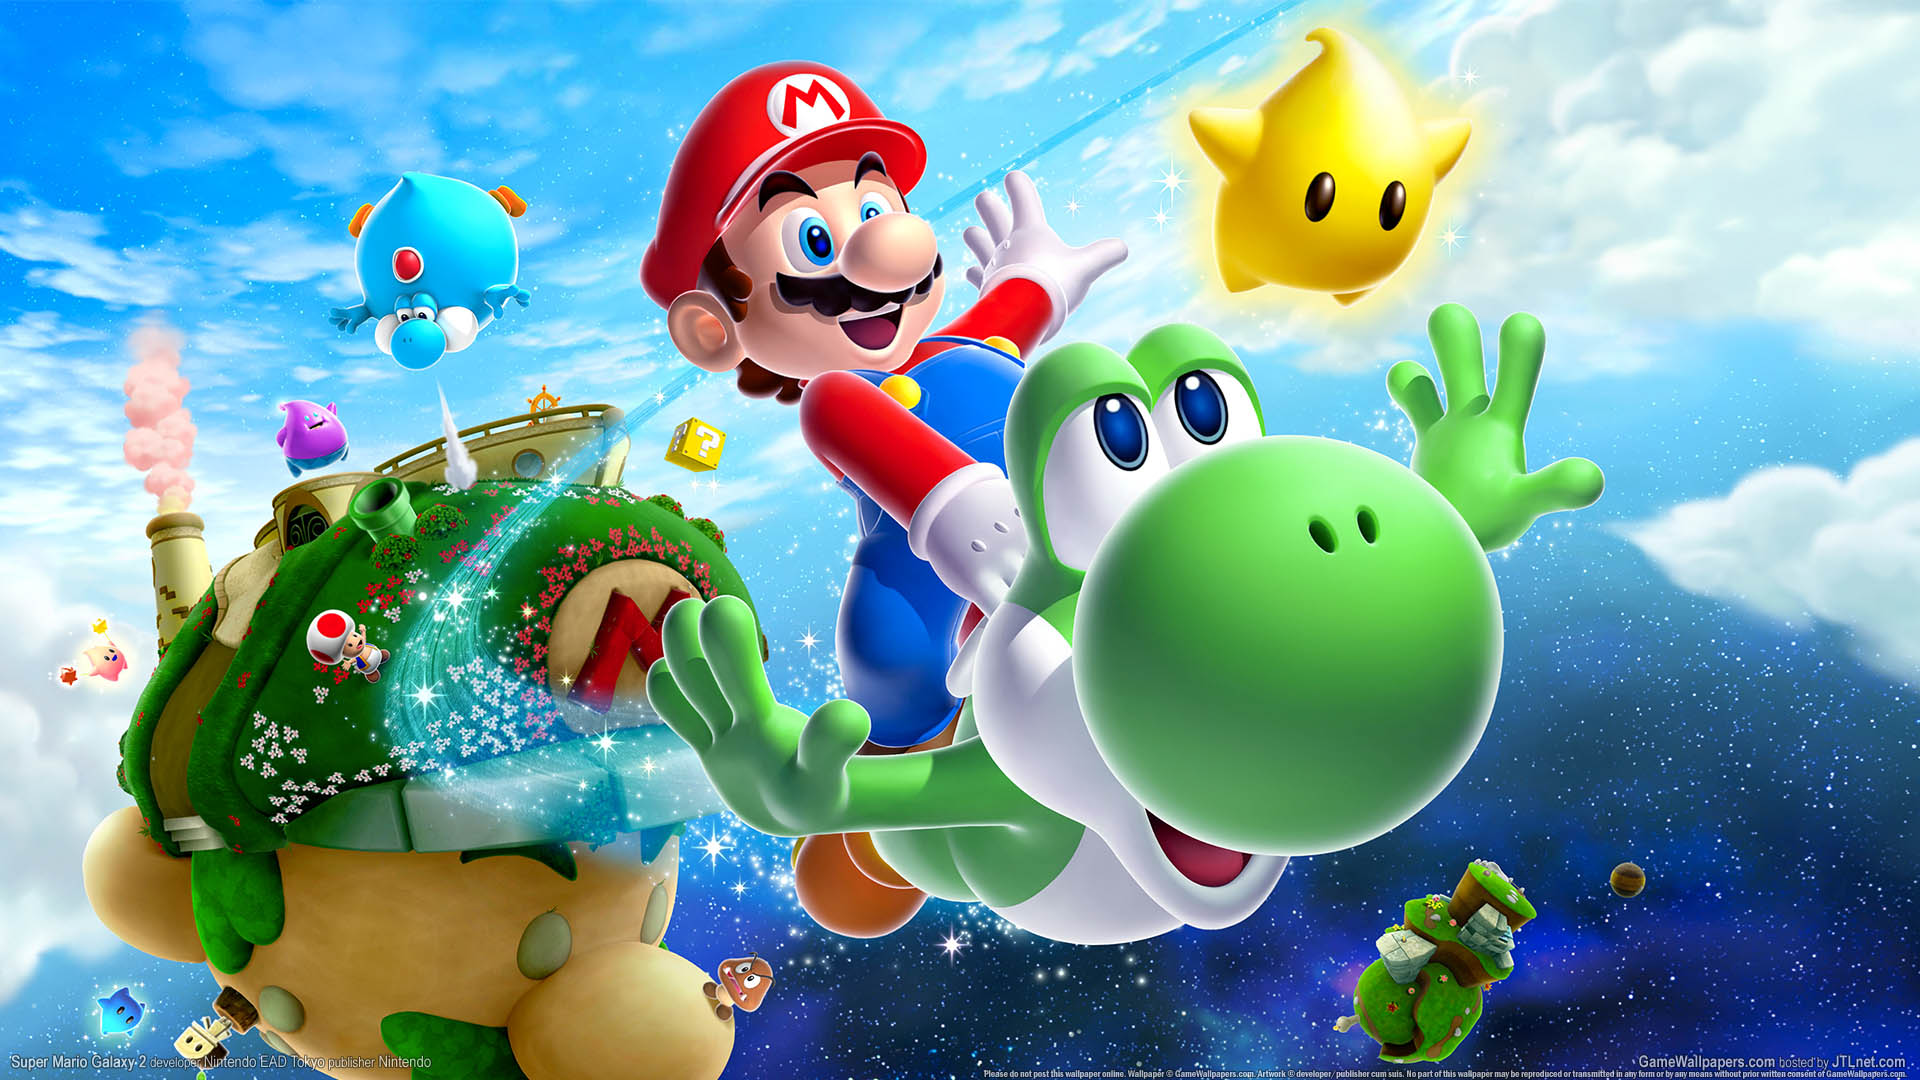 Super Mario Galaxy 2 wallpaper 01 1920x1080